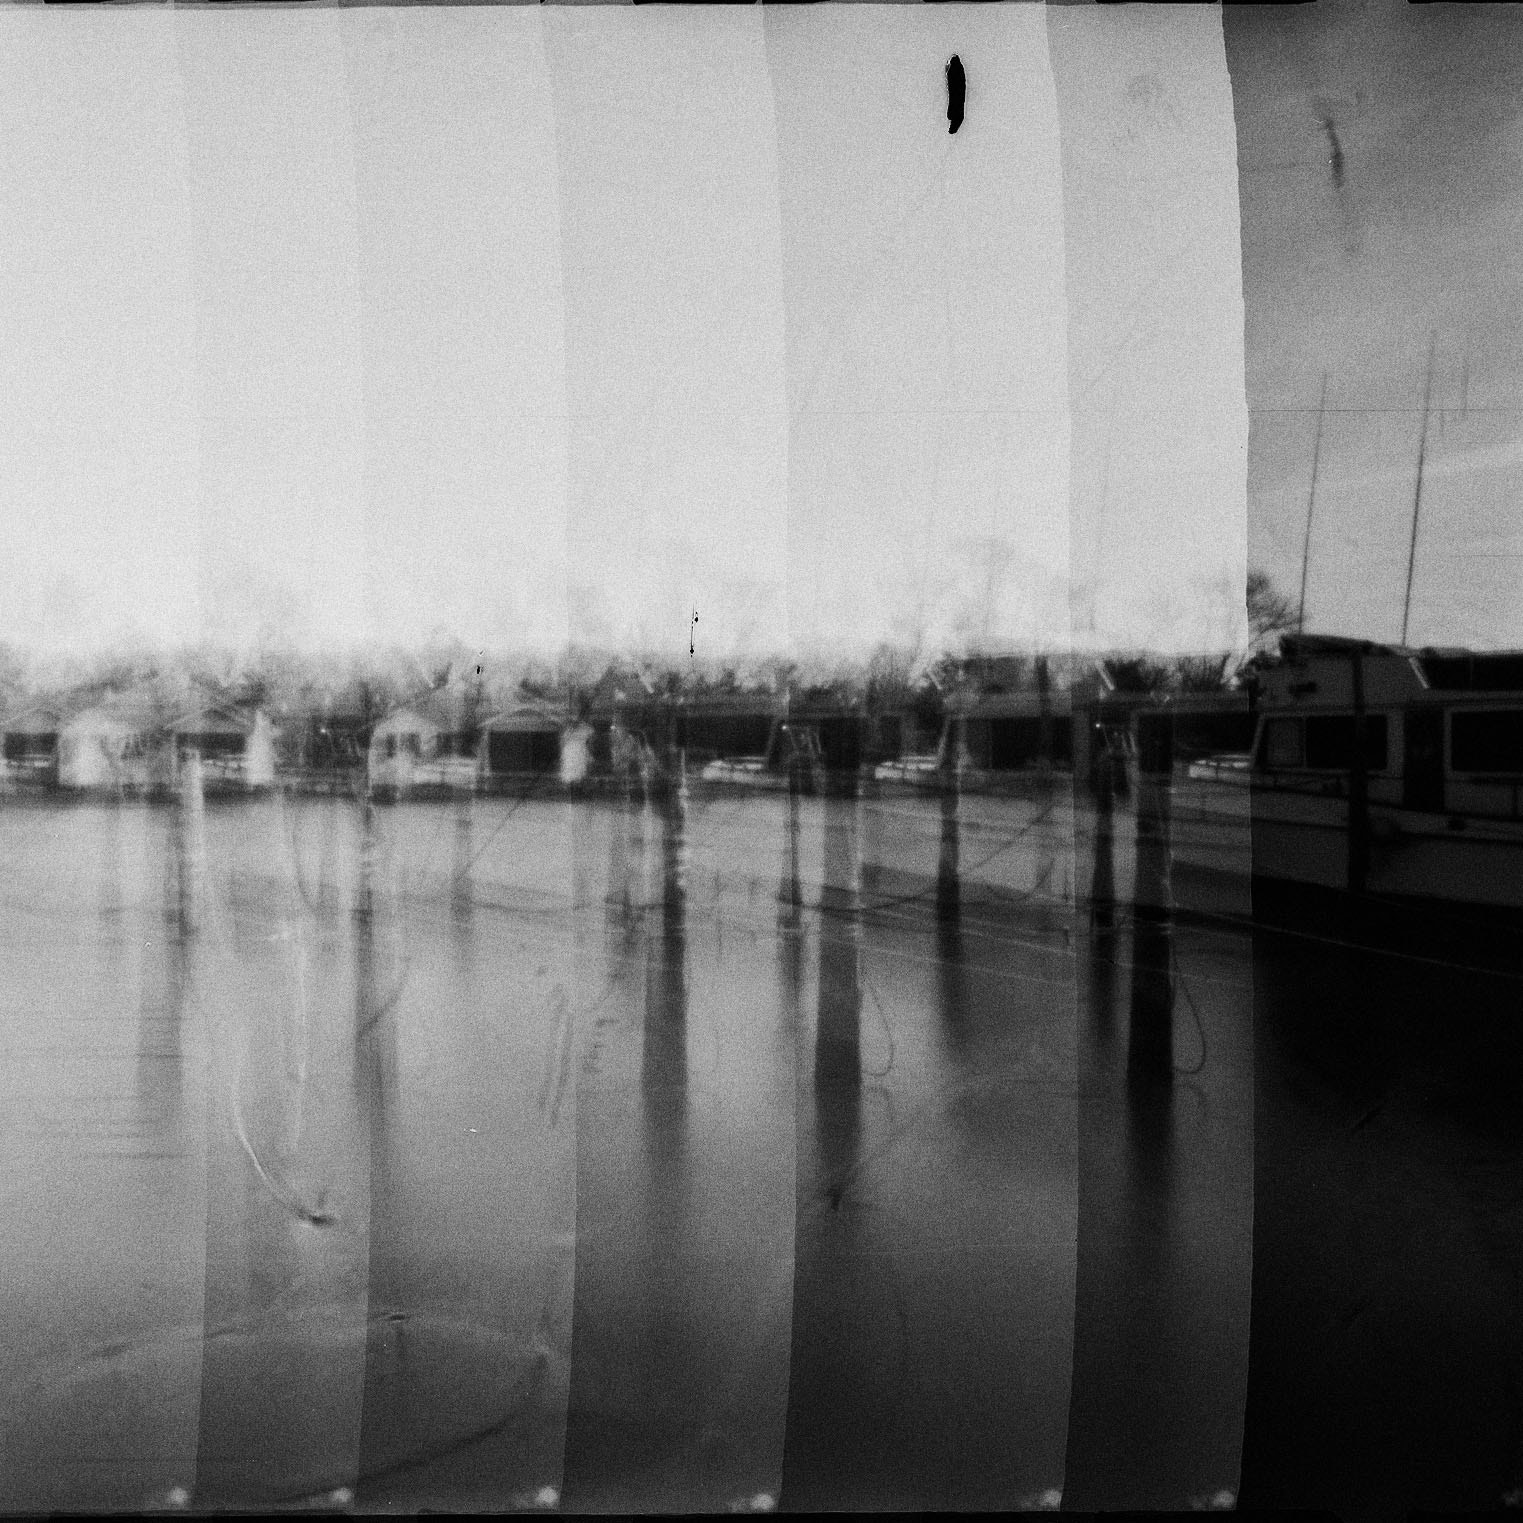 Photograph Ruined Film 1 by Evan Lavine on 500px